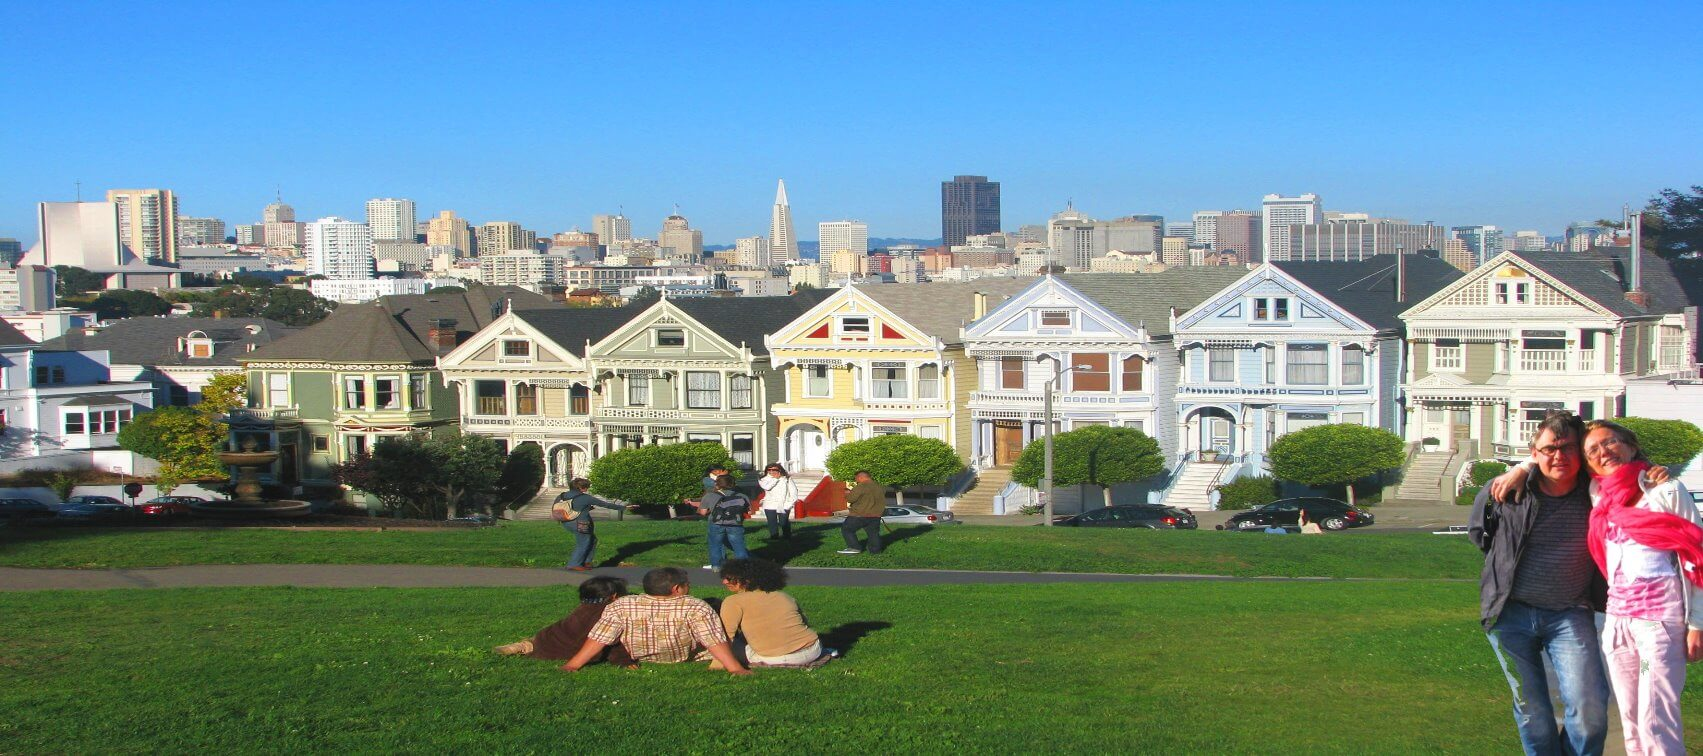 best_bay_area_toursand_san_francisco_sightseeing_tours